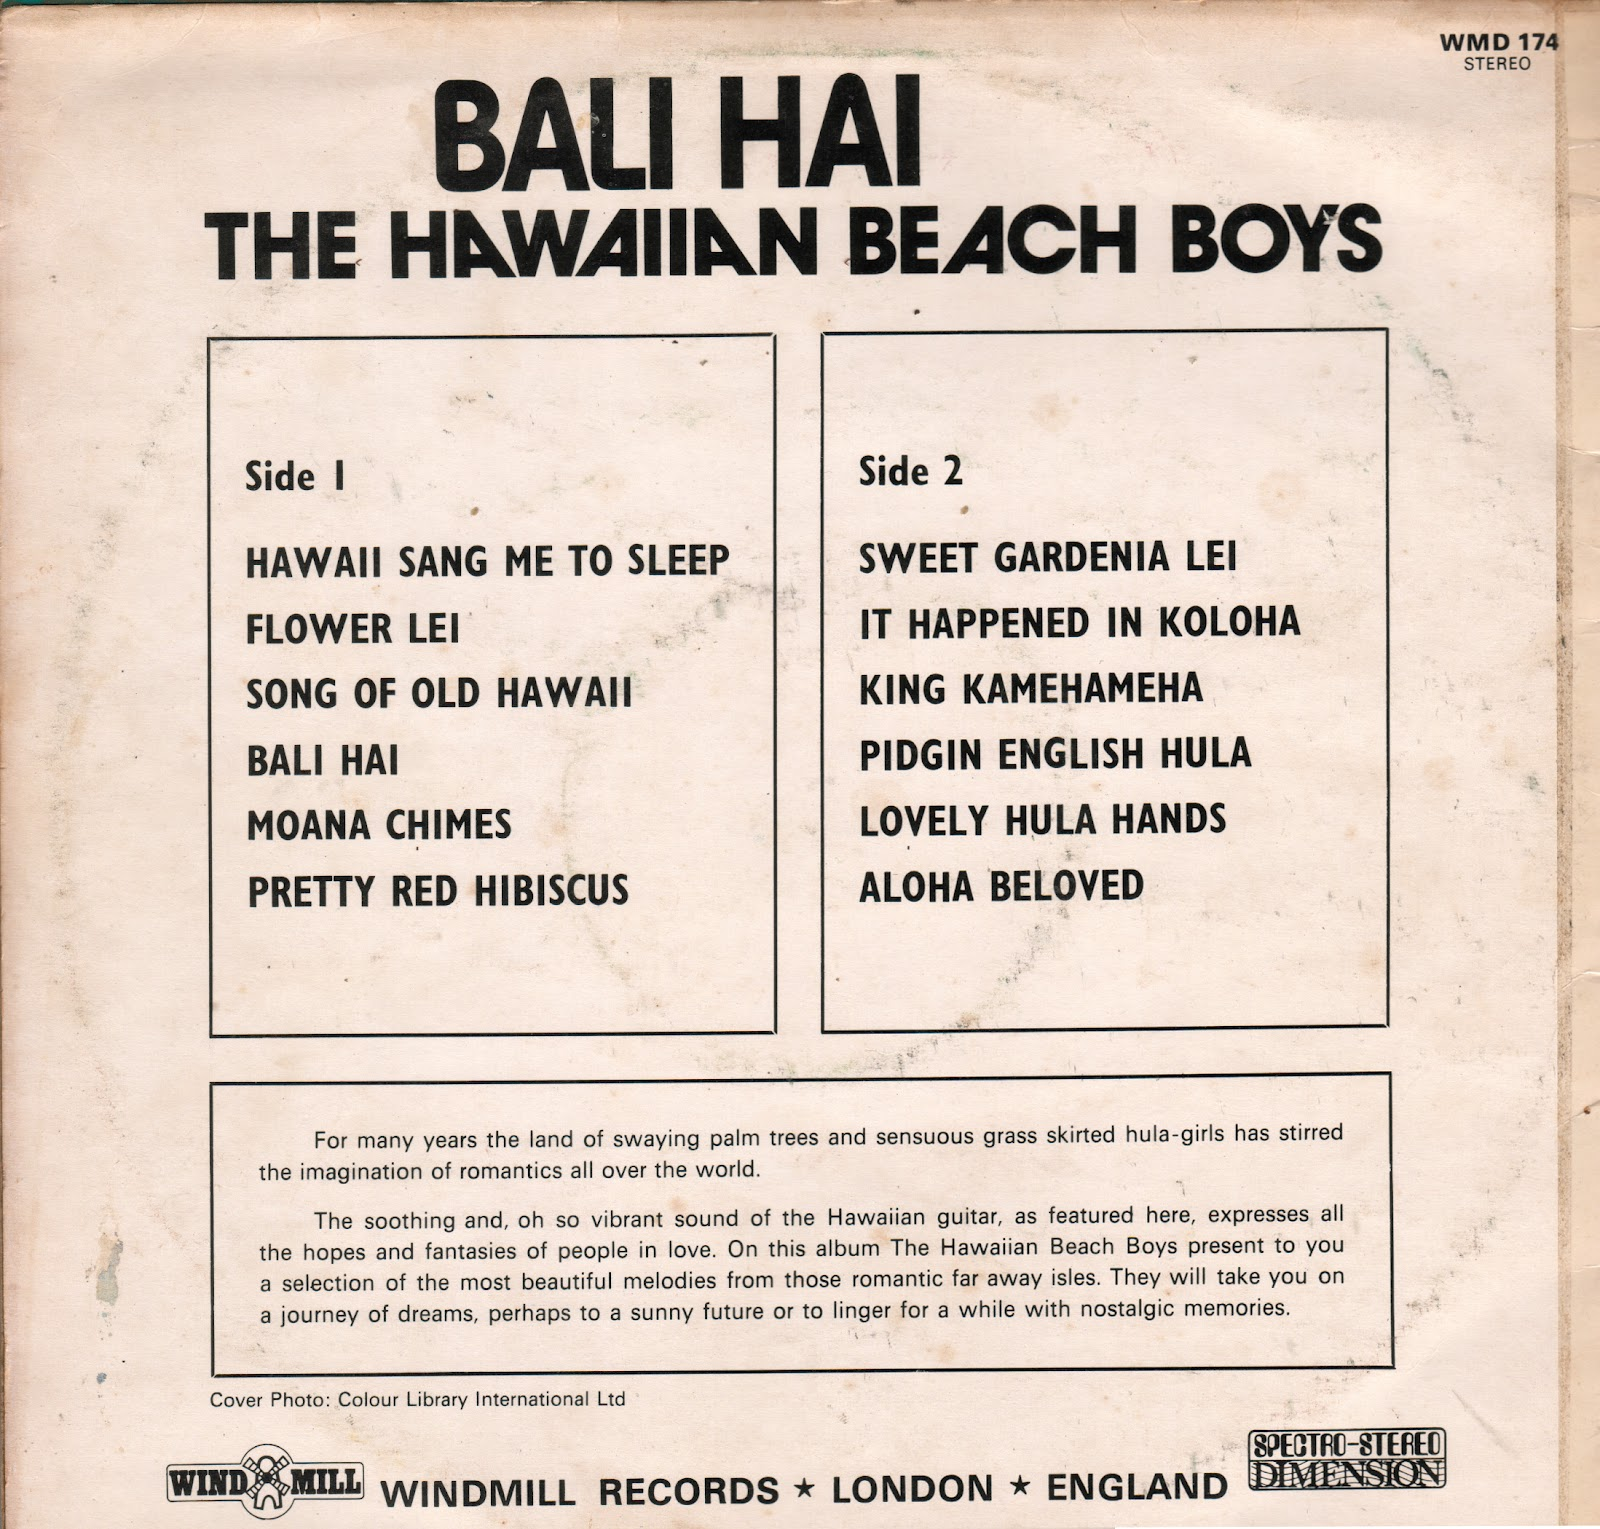 The Hawaiian Beach Boys - Bali Hai